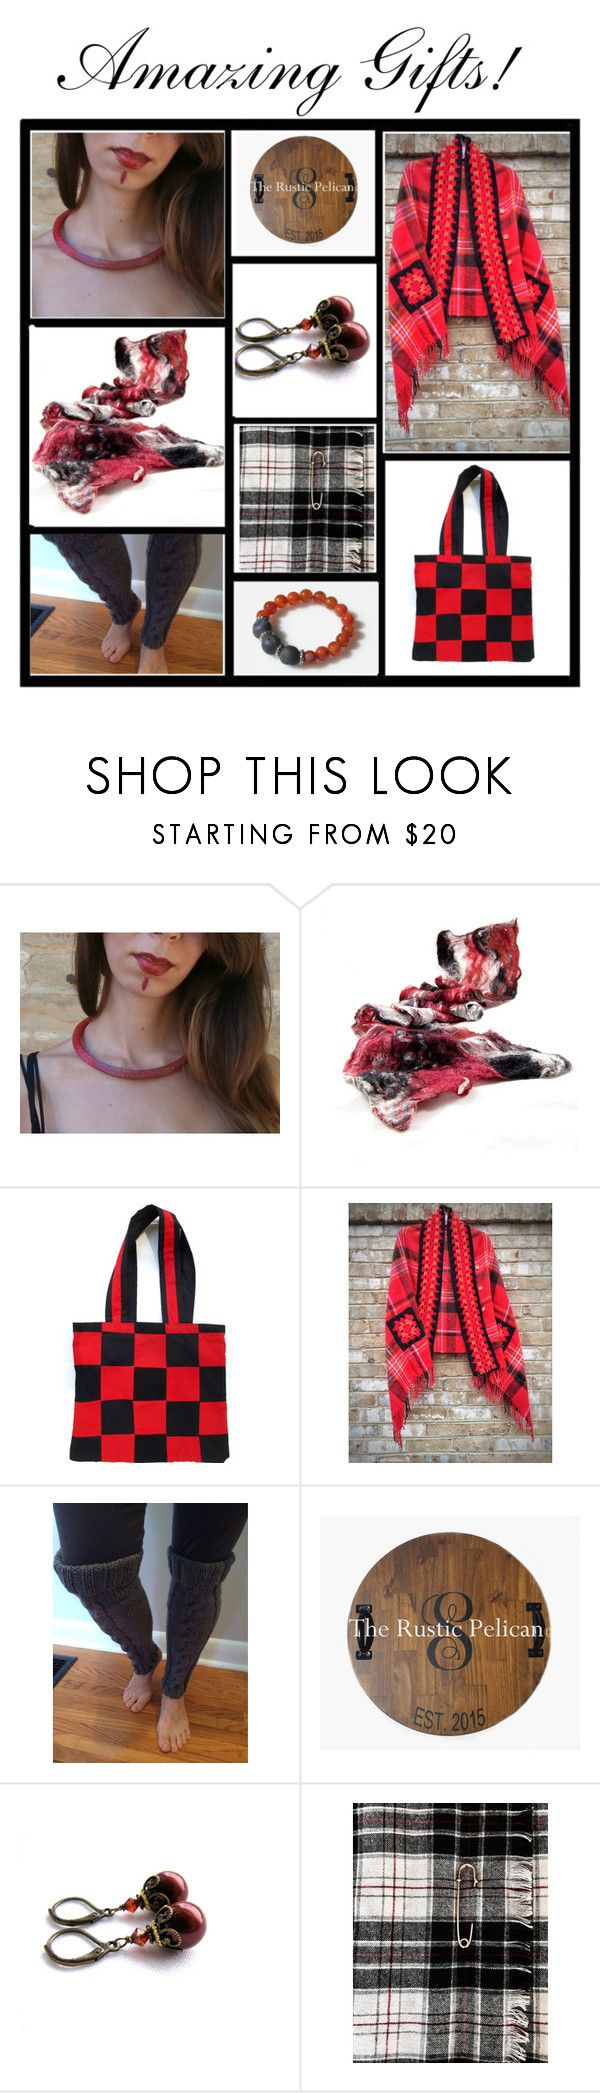 Amazing Hand Made Gifts ! by jarmgirl on Polyvore featuring Hostess